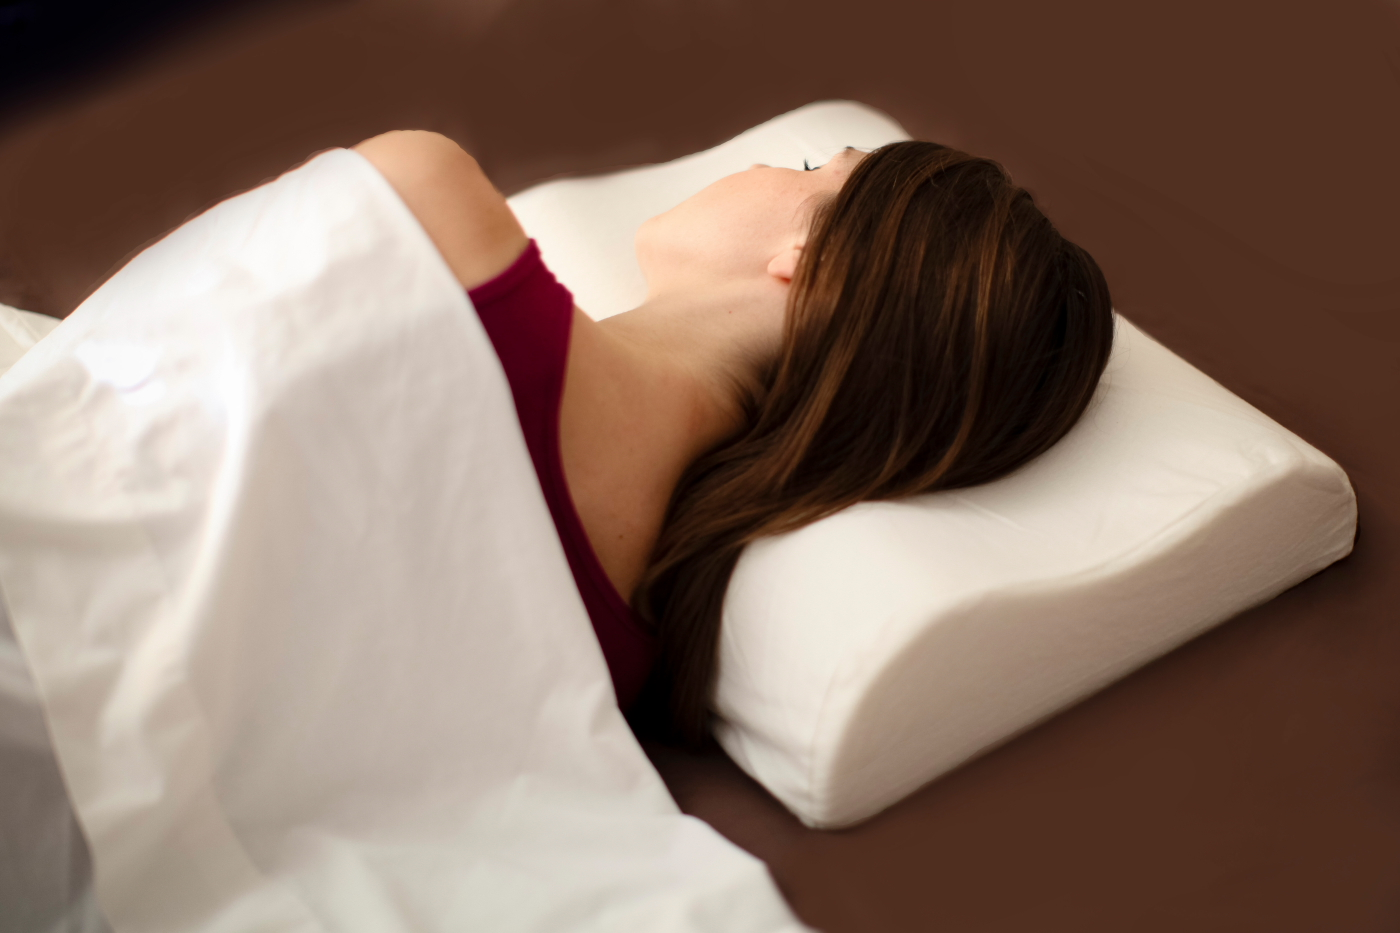 Memory foam neck support pillow to aid in neck pain relief